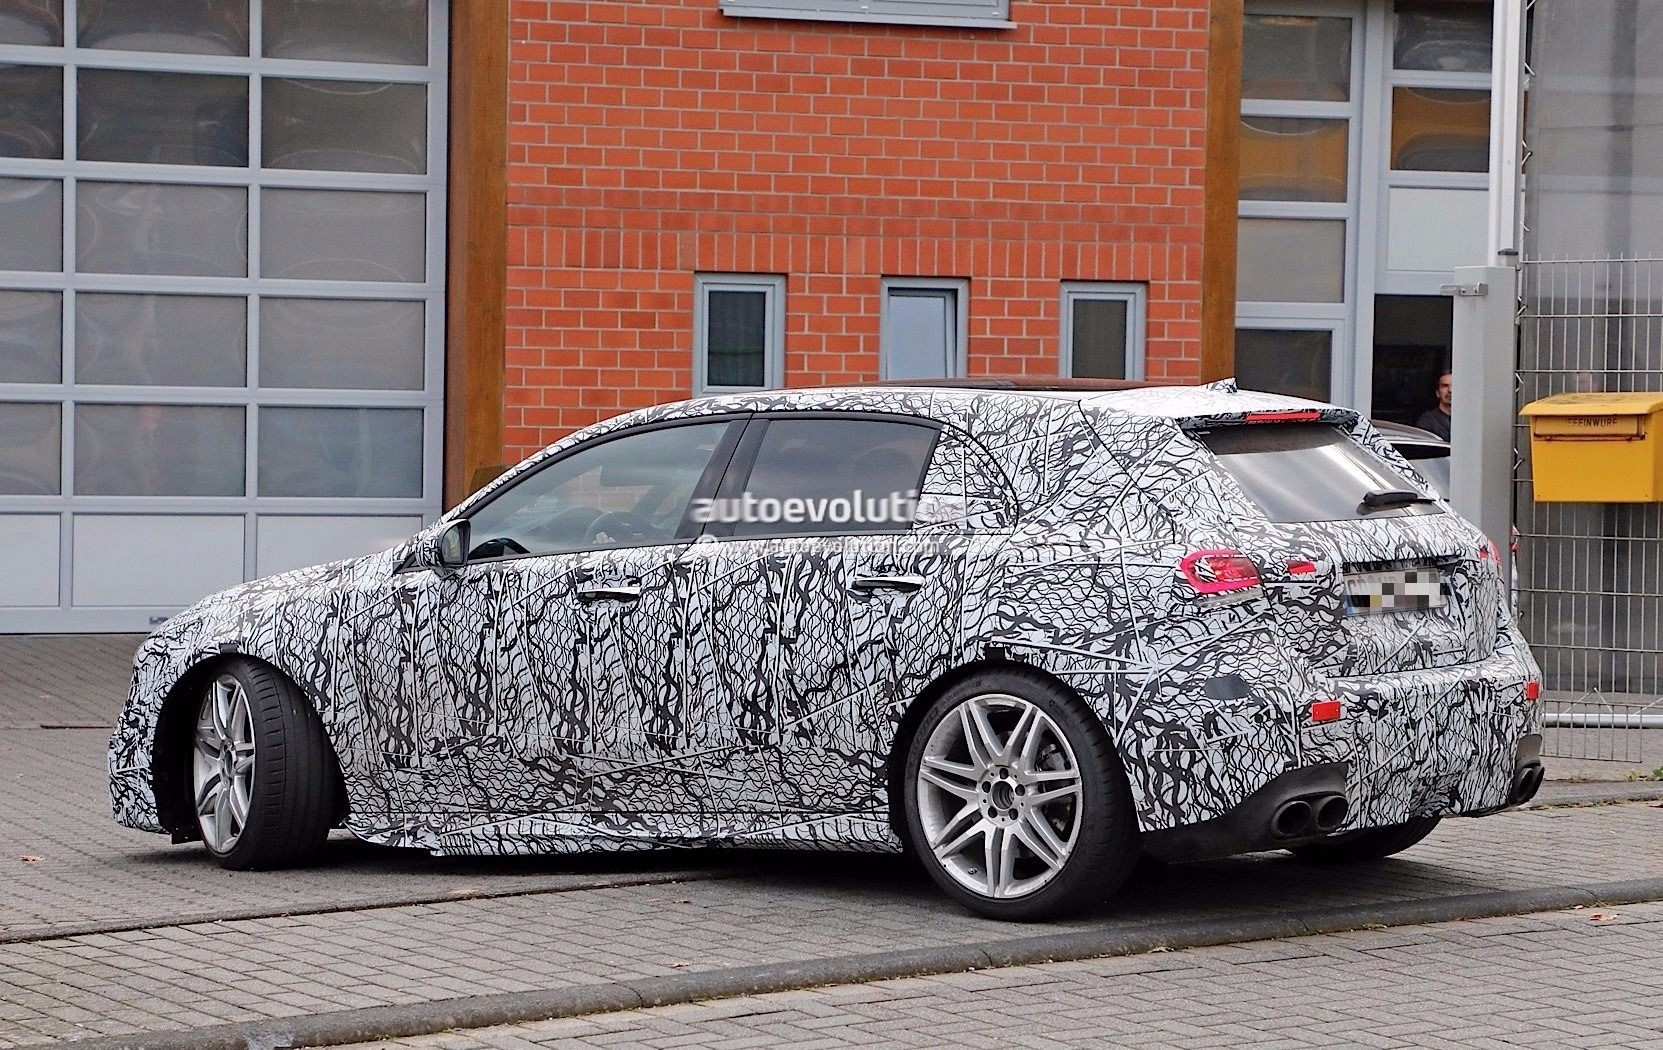 2019 mercedes amg a45 and a class spied testing at the nurburgring autoevolution. Black Bedroom Furniture Sets. Home Design Ideas